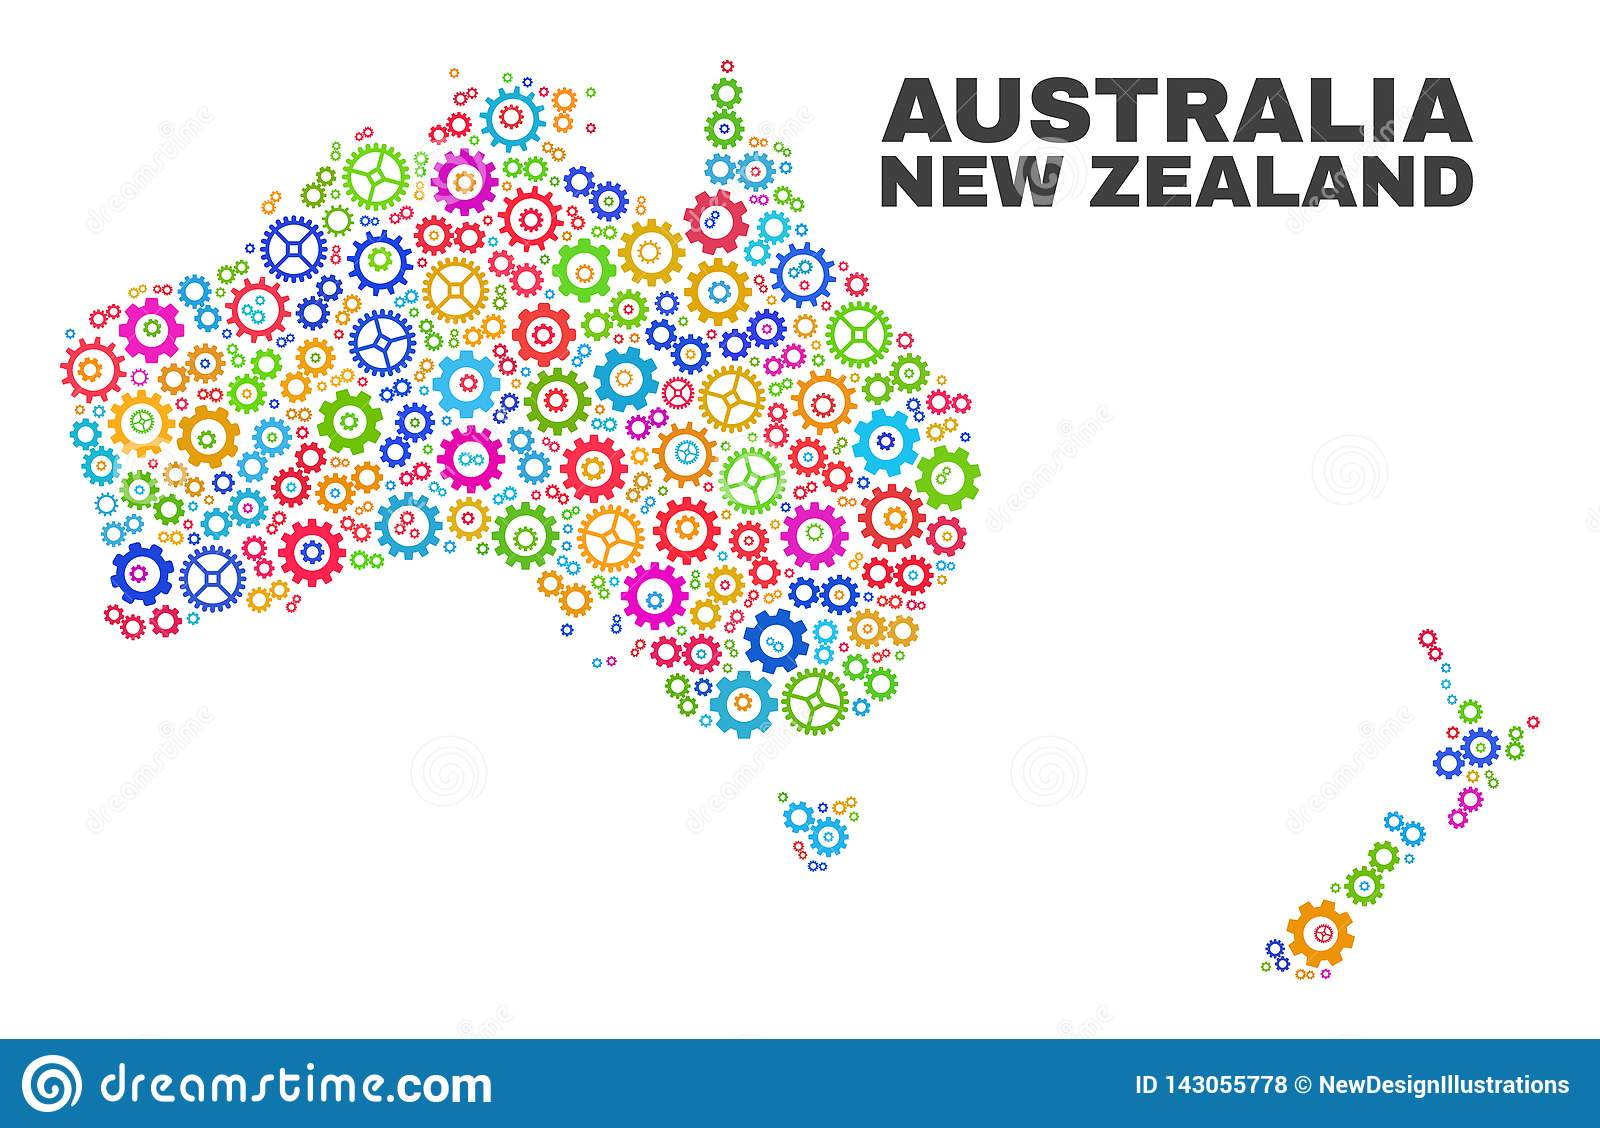 Australia To New Zealand Map.Mosaic Australia And New Zealand Map Of Gearwheel Elements Stock